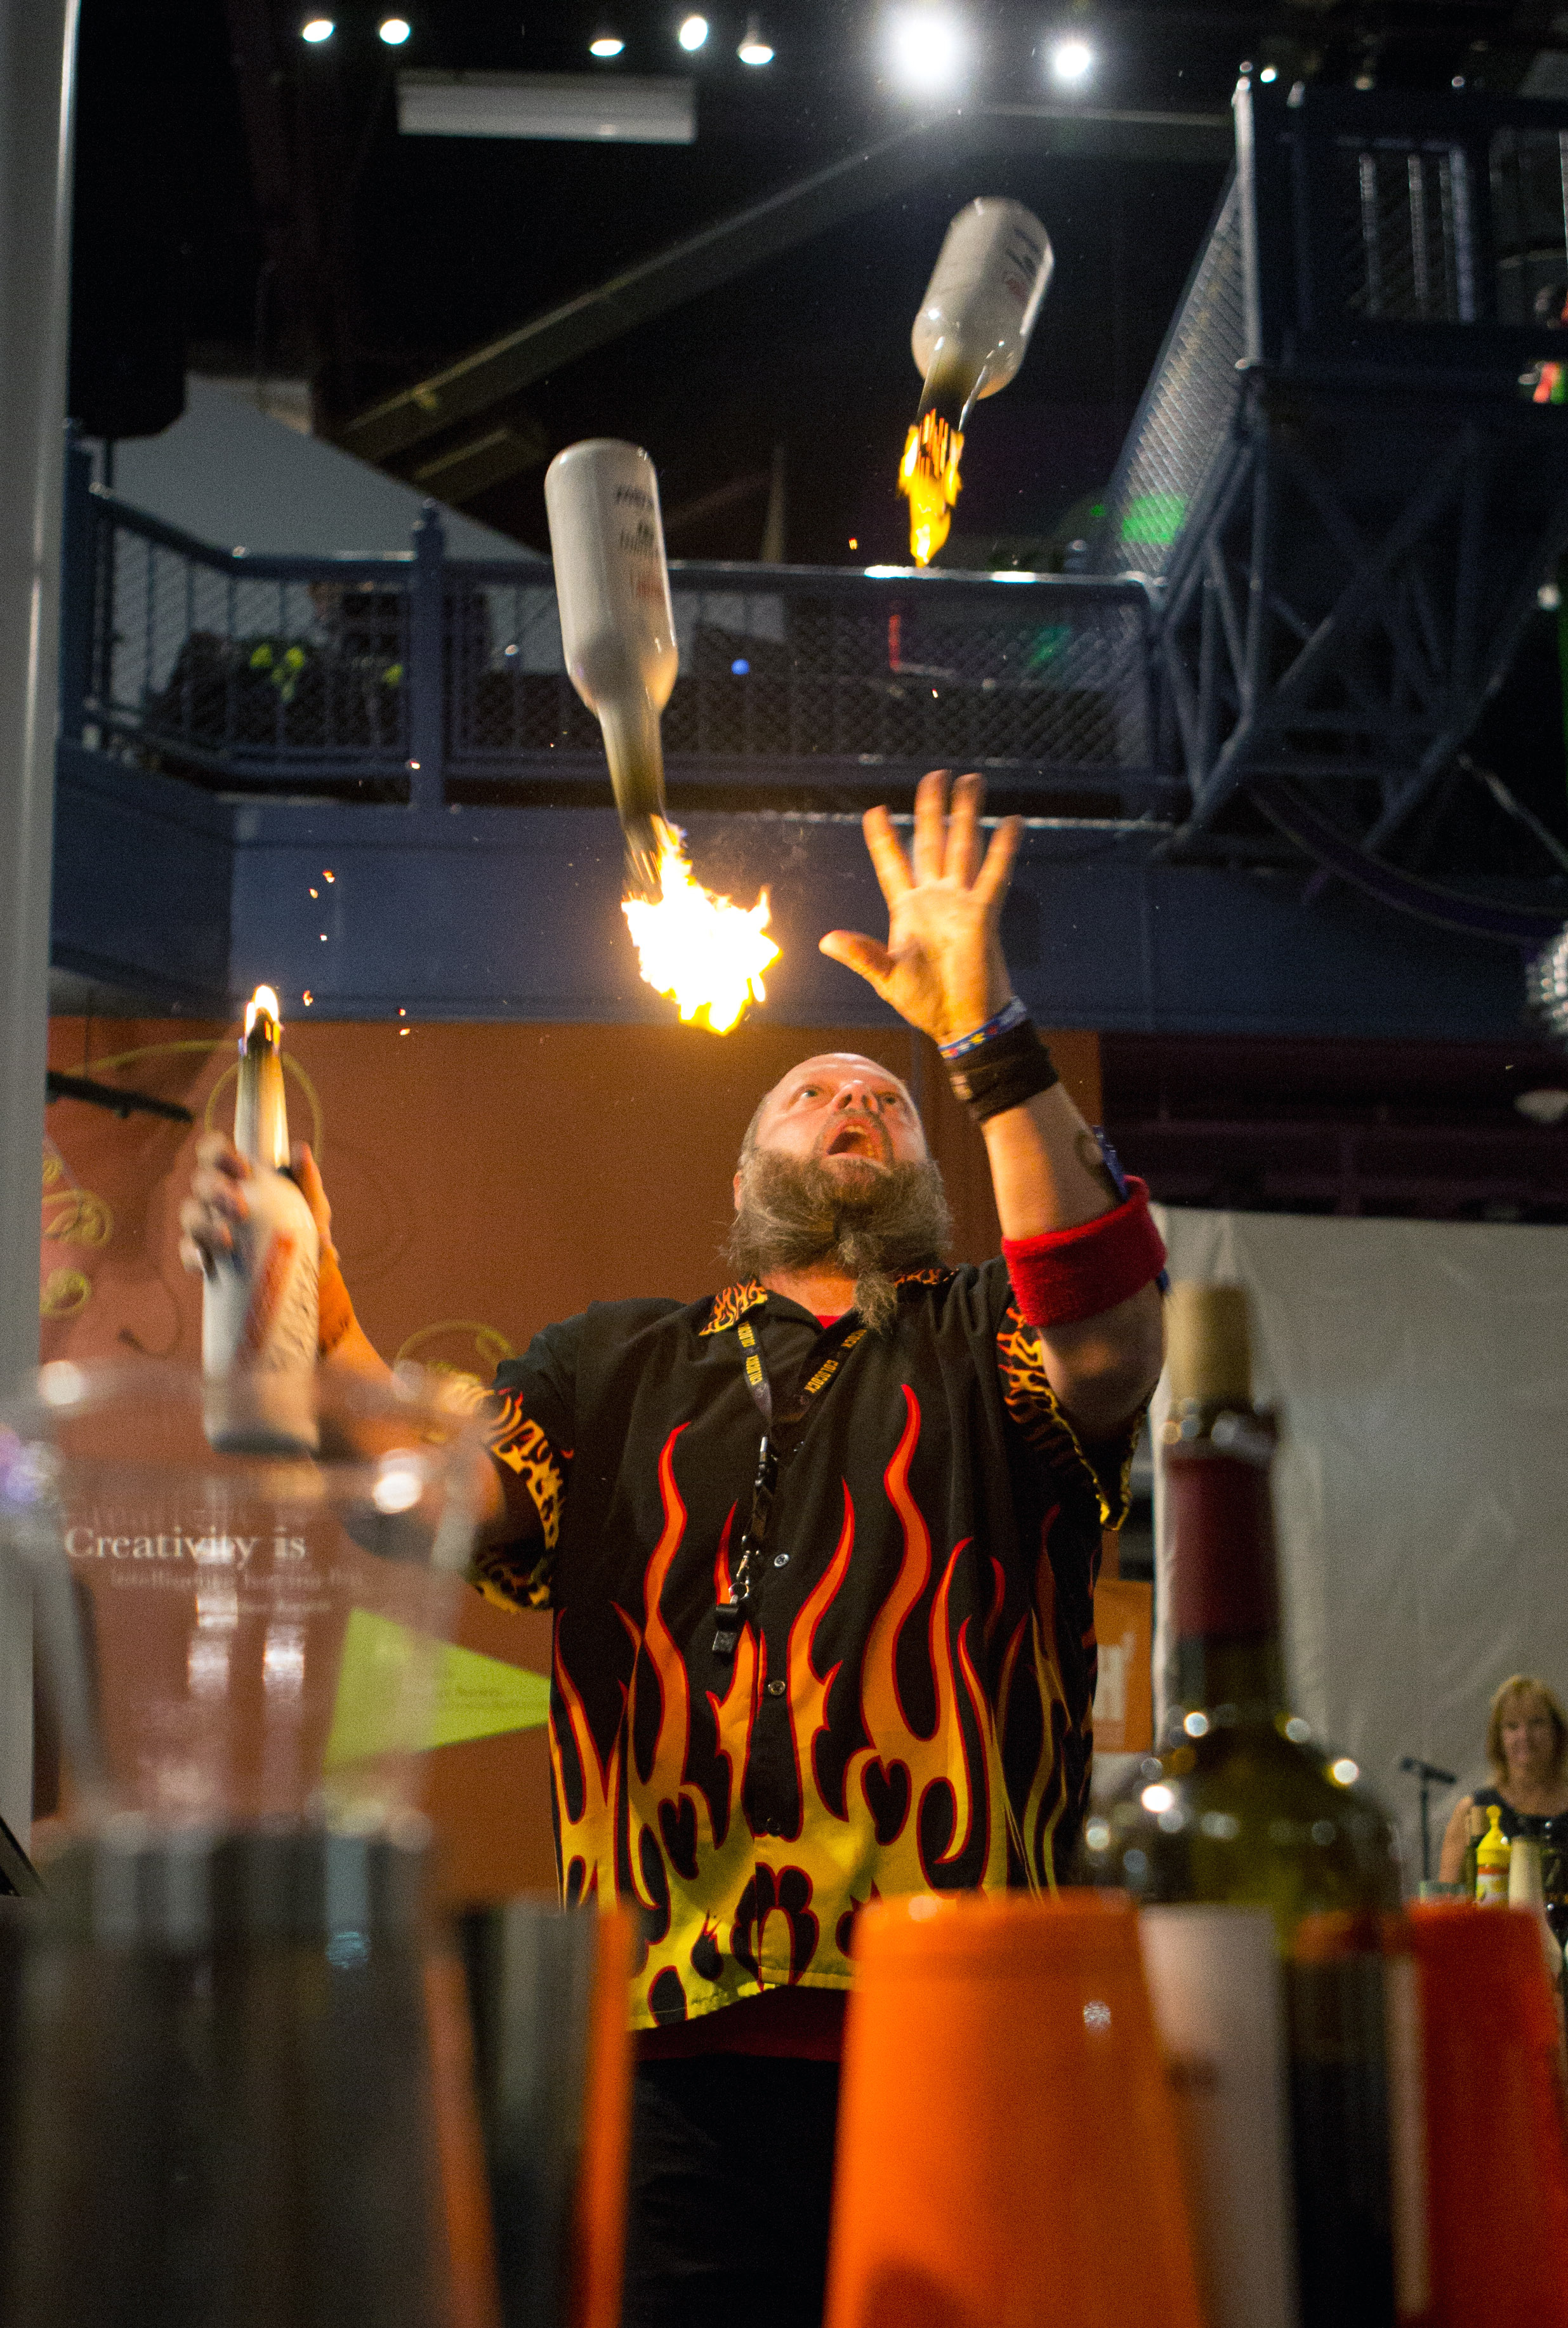 Celebrity mixologist Robbie Flair juggles flaming liquor bottles as part of a flair branding performance during the Bash 7 fundraiser at Imagination Station in downtown Toledo on Saturday, Sept. 17, 2016.